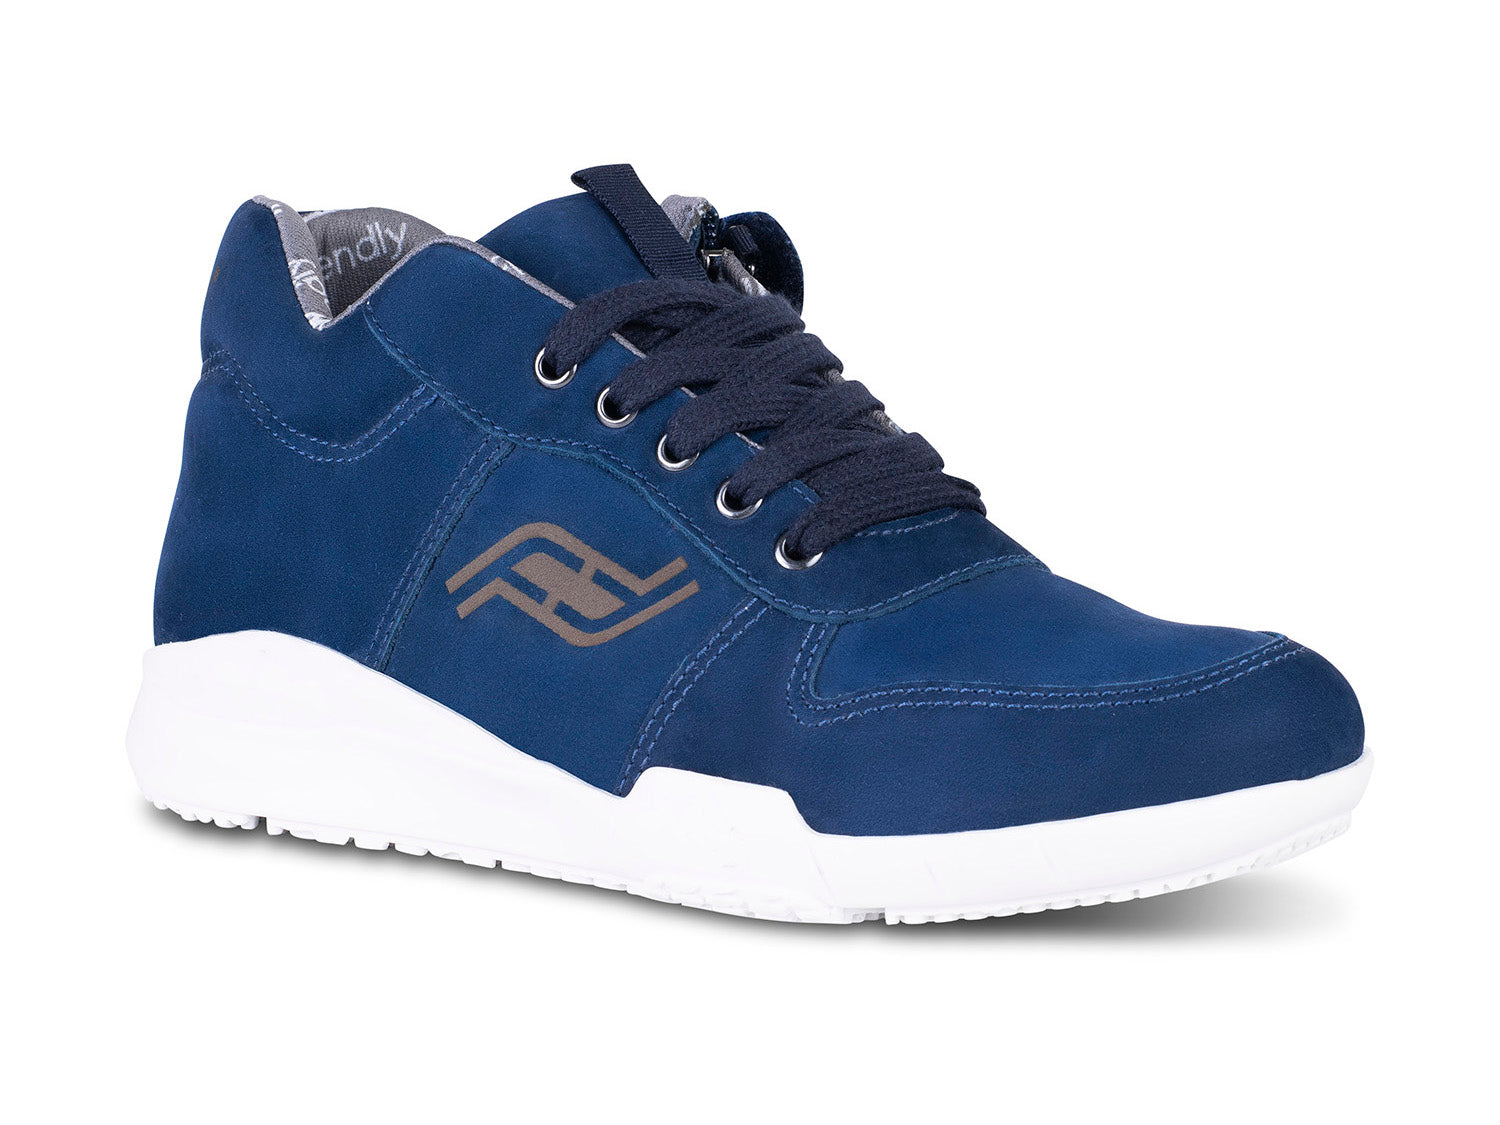 Men's Medimoto Blue Suede Shoe